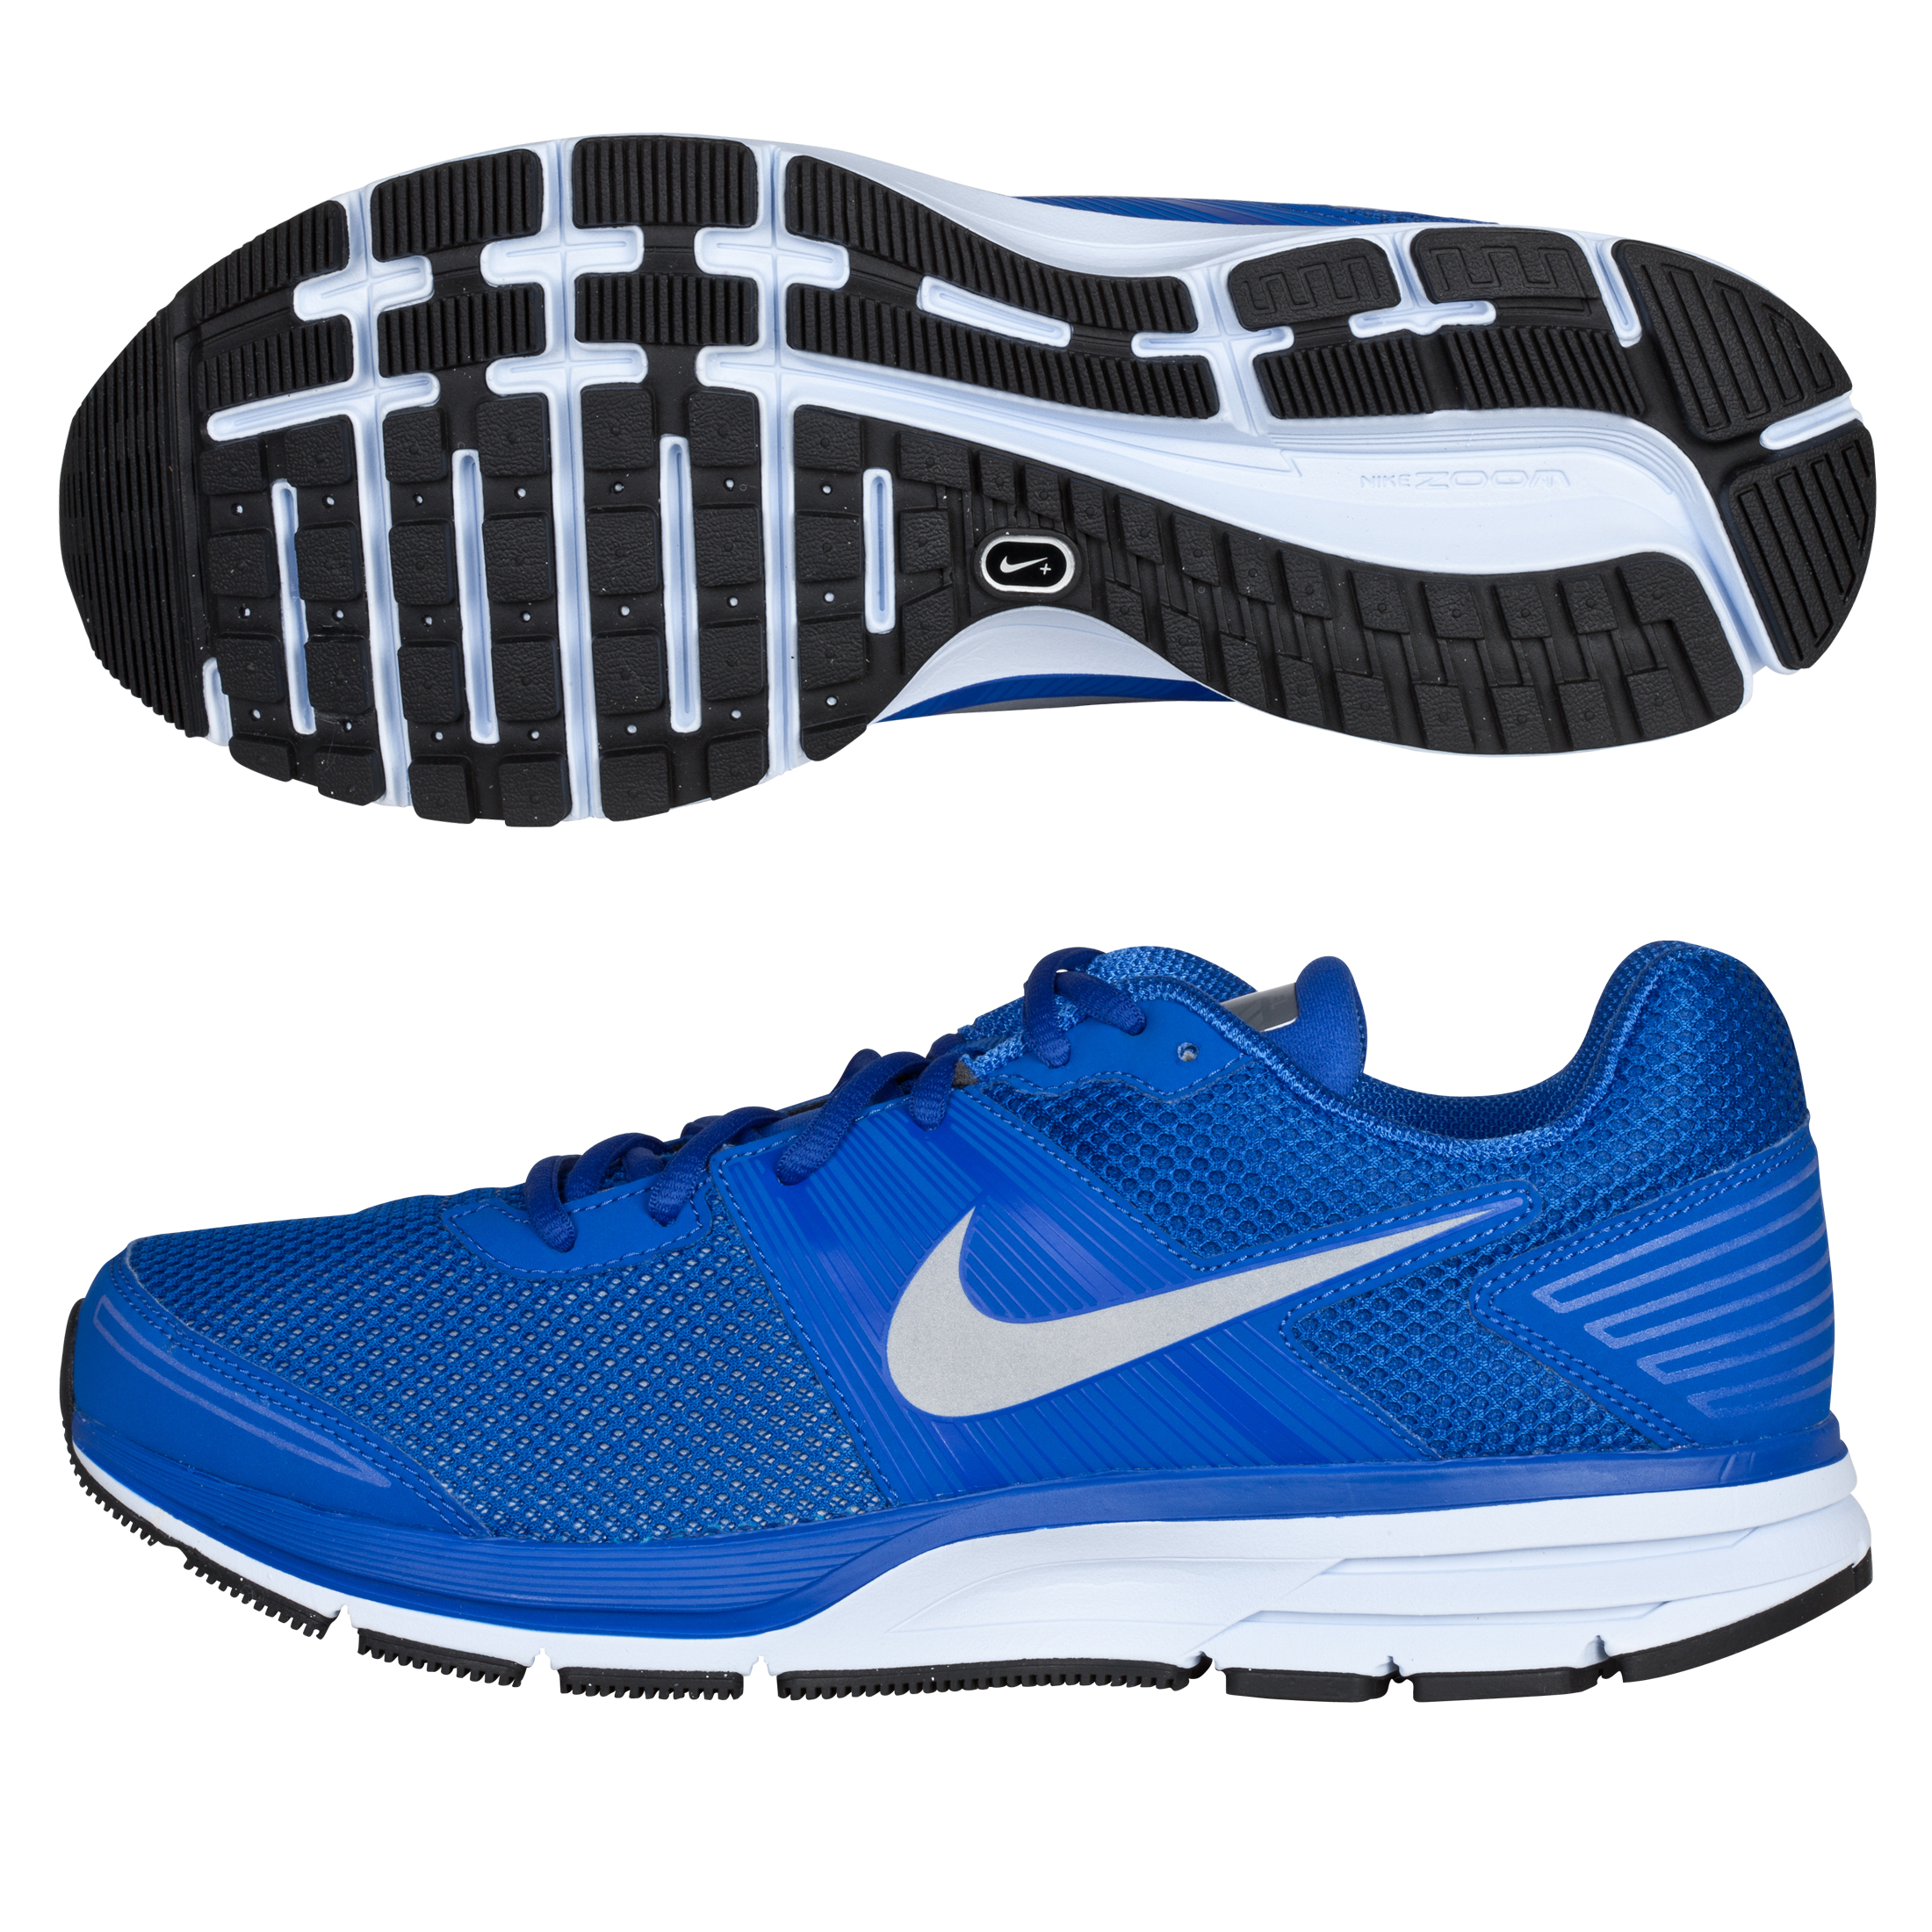 Nike Air Pegasus(+) 29 Shield Trainers - Royal/Reflective Silver